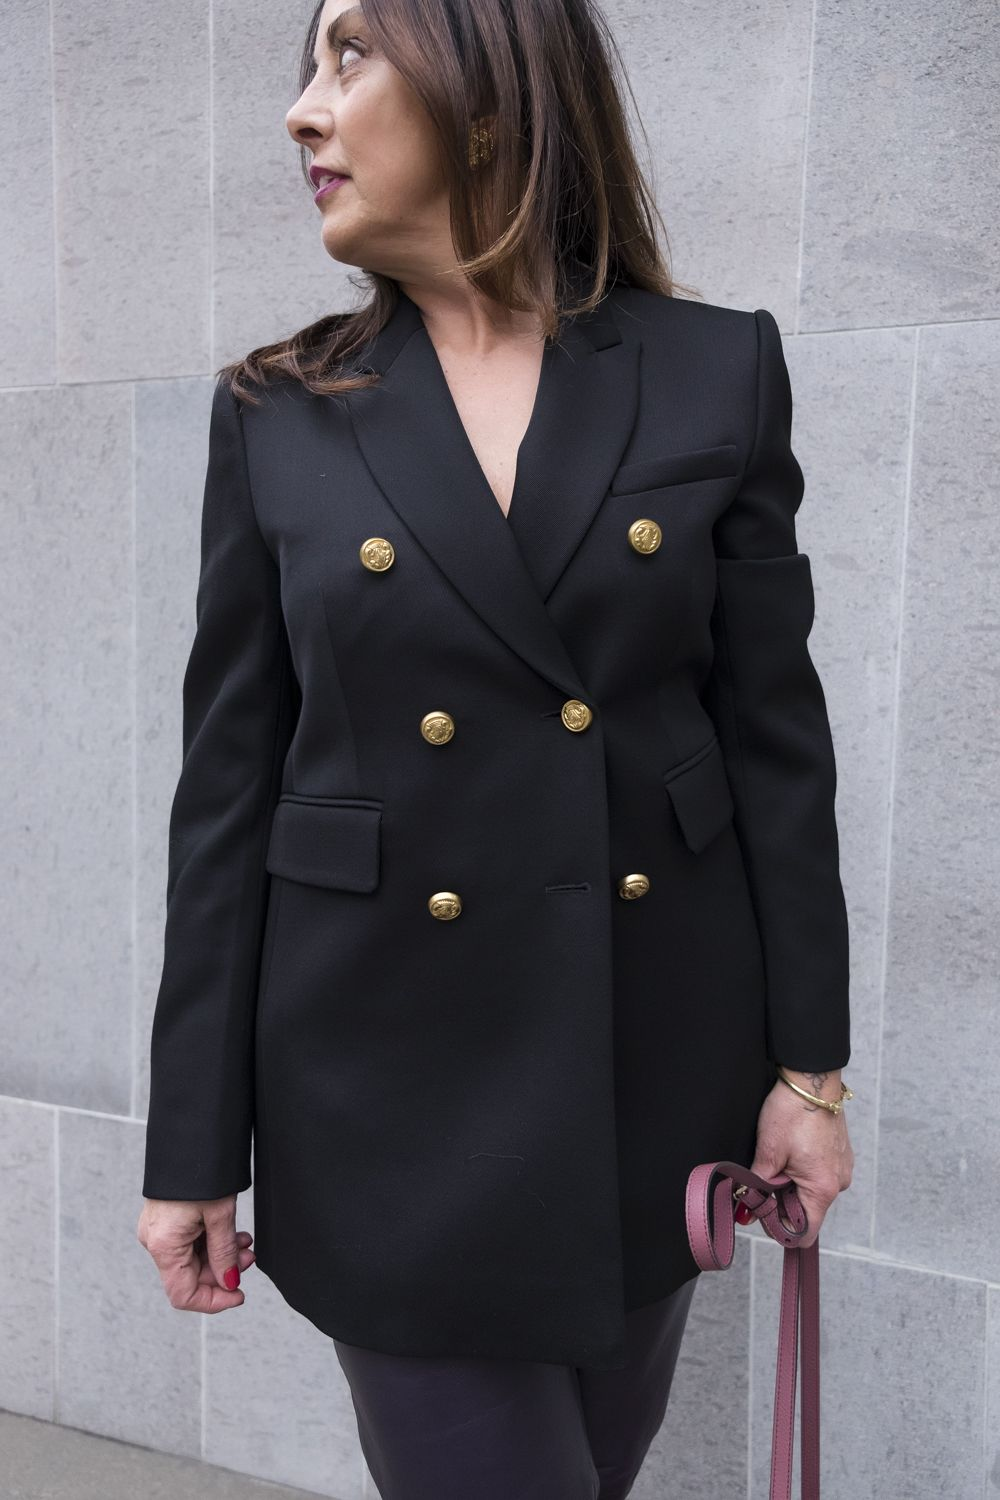 military jacket with a bra?